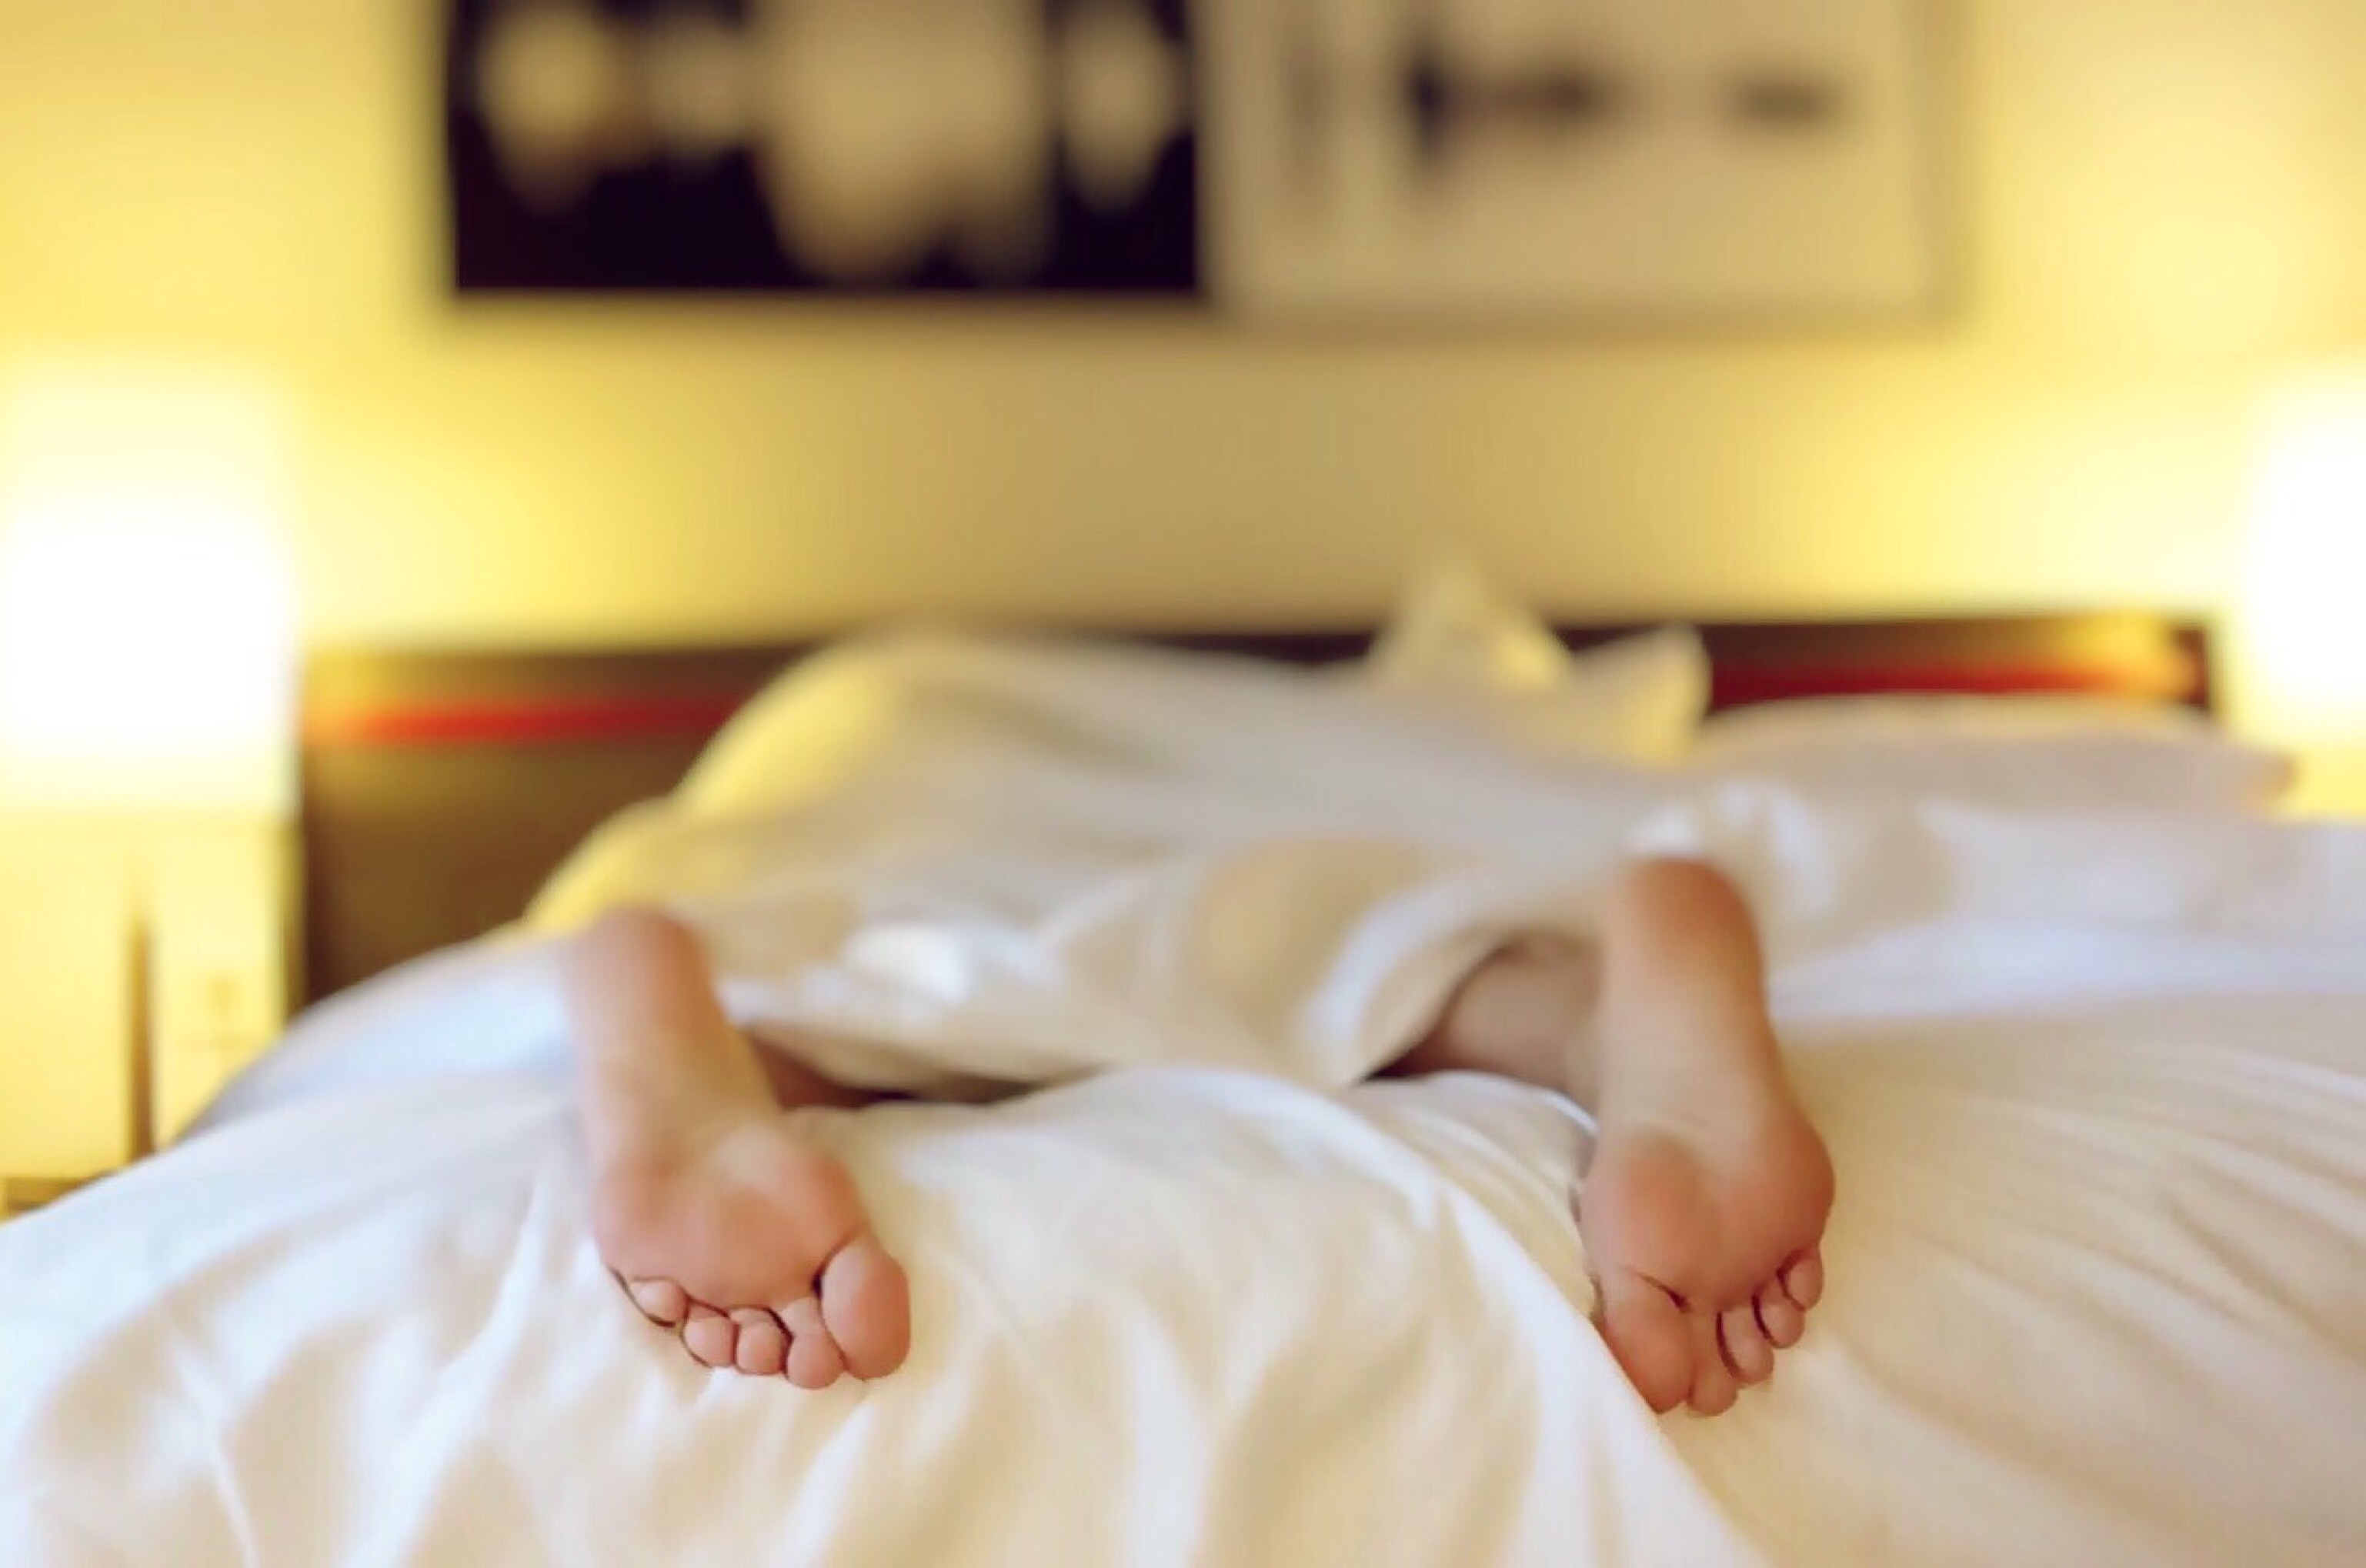 Canva - Person Lying on Bed Covering White Blanket